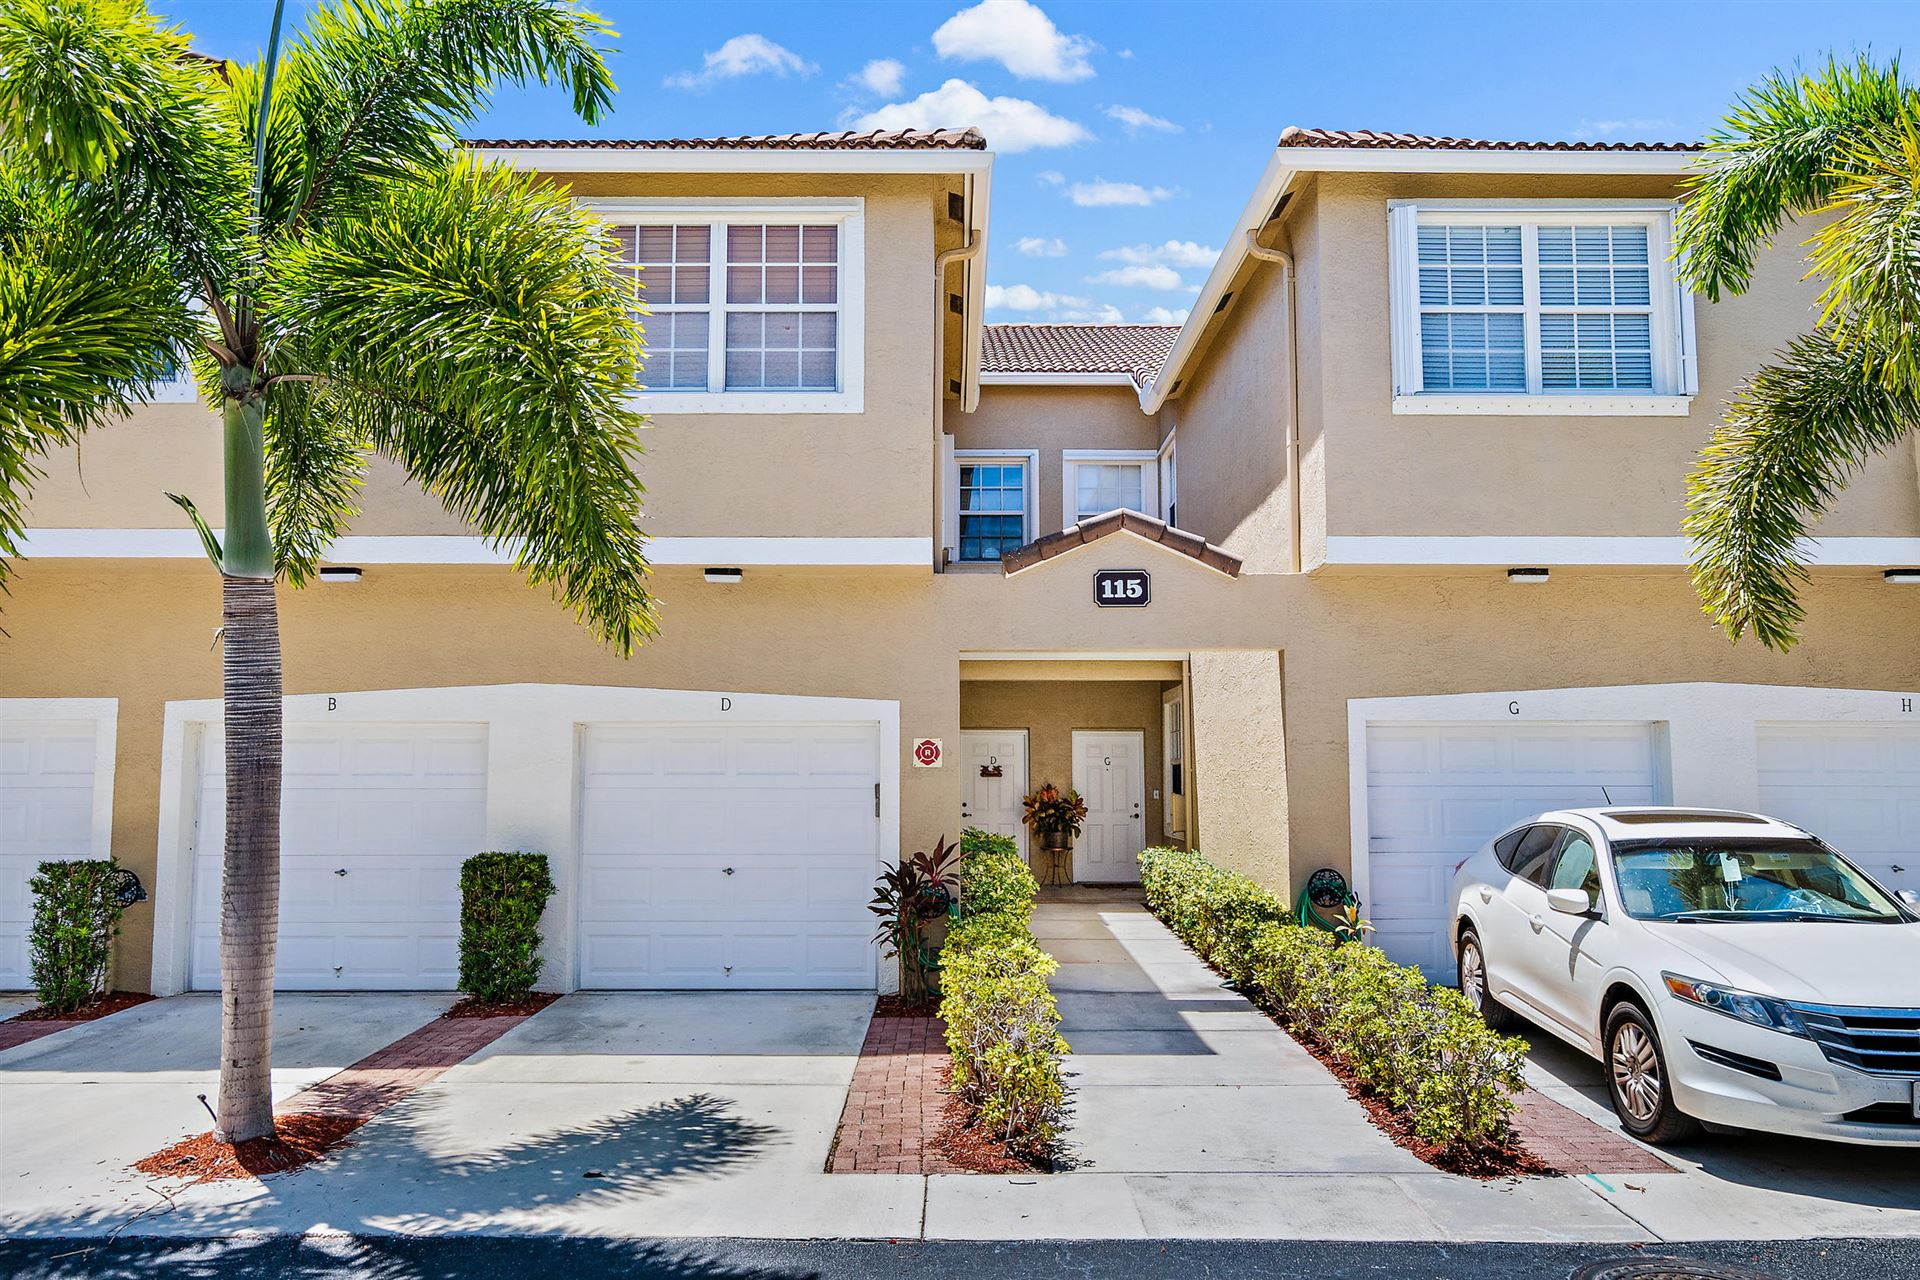 Photo for 115 Lighthouse Circle #D, Tequesta, FL 33469 (MLS # RX-10740065)